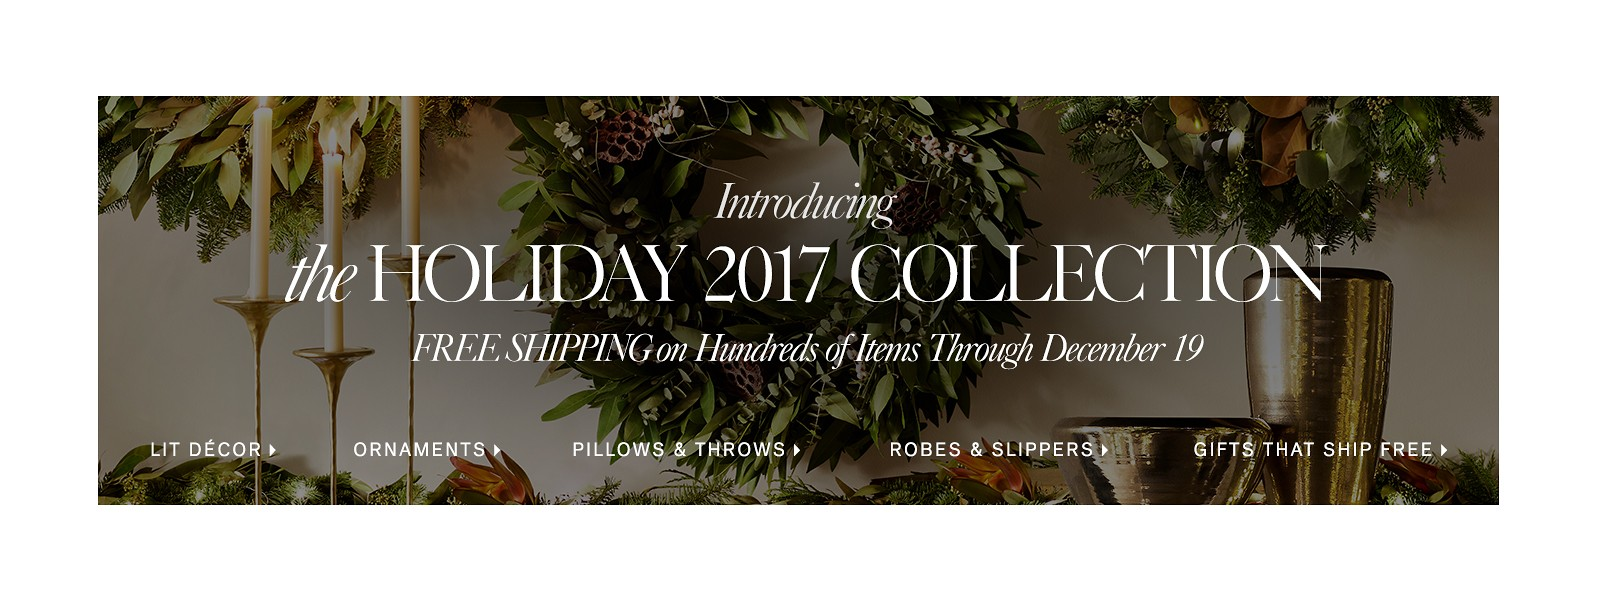 Introducing the Holiday 2017 Collection. Free Shipping on Hundreds of Items through December 19.